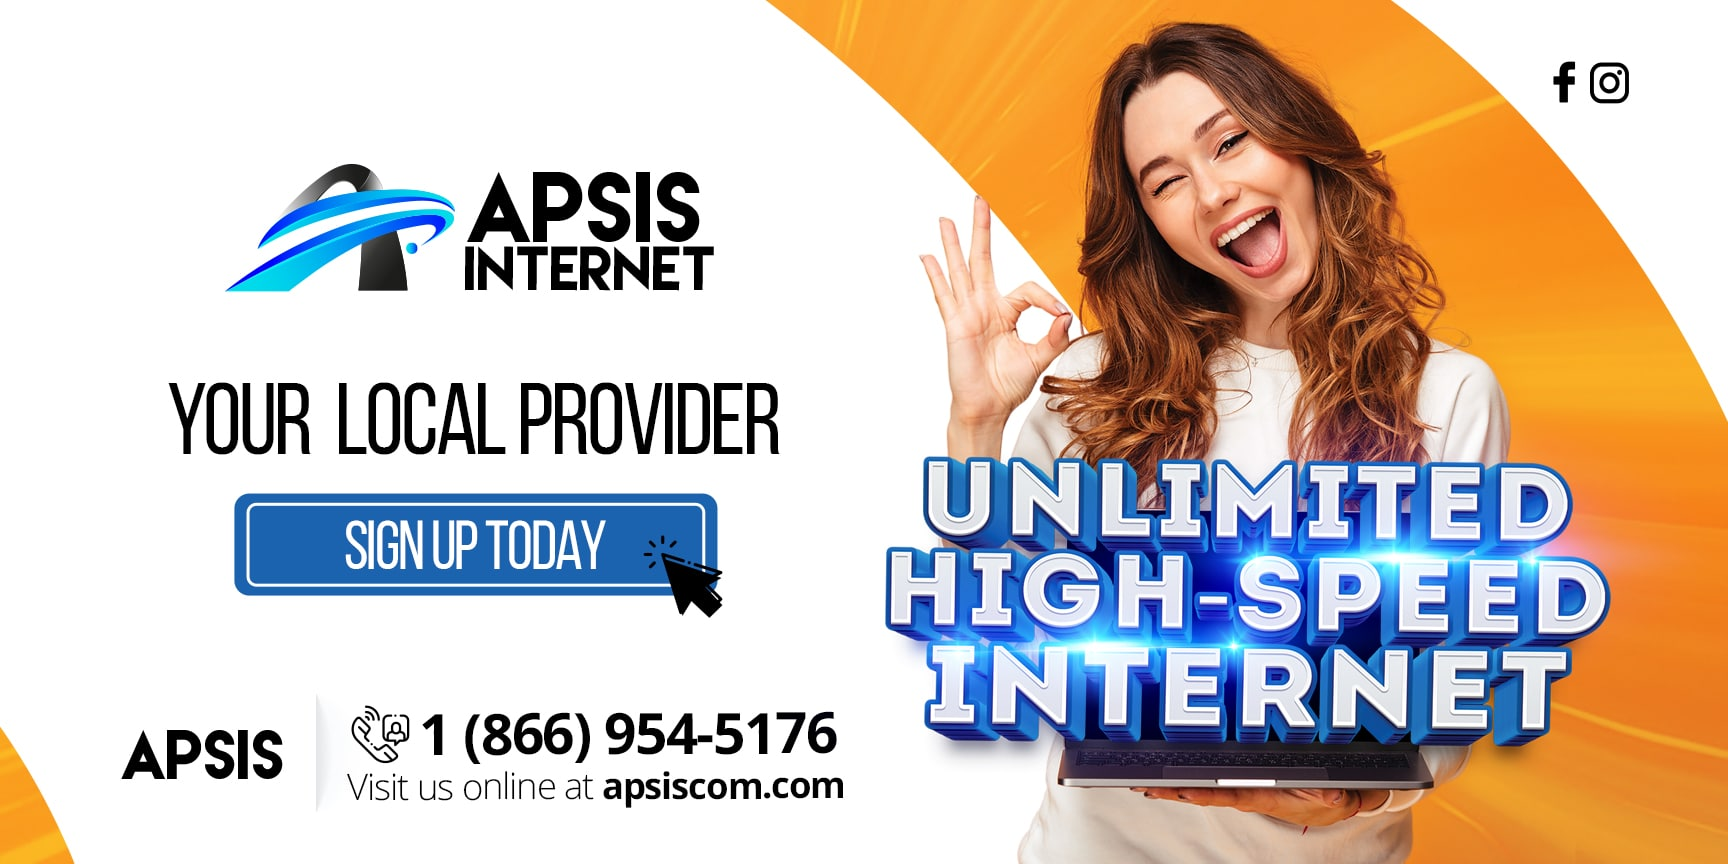 Apsis Internet Designed for you!: Friendly * Affordable * Reliable